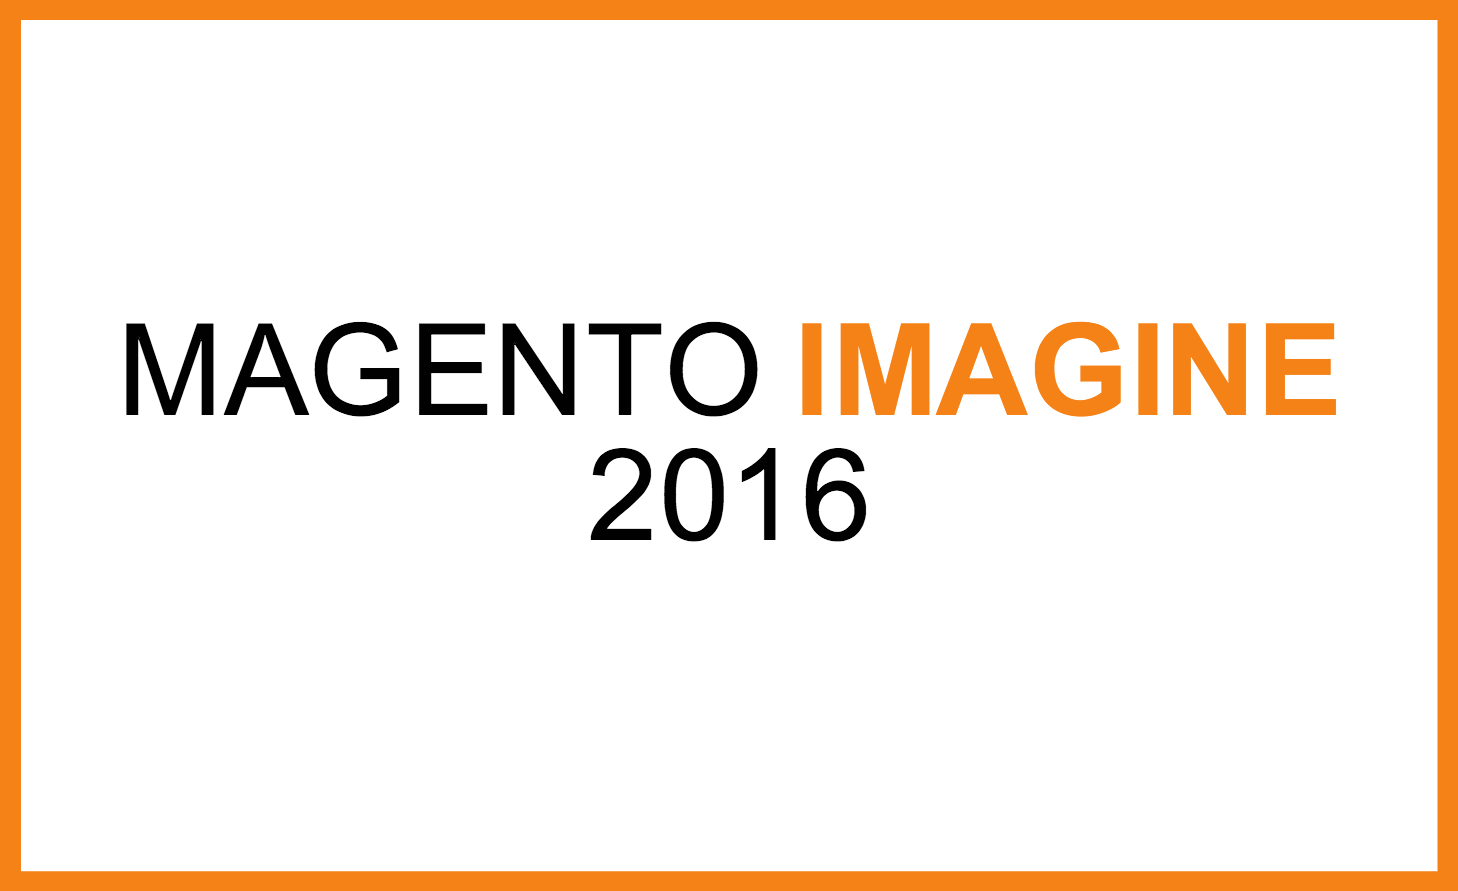 imagine_2016.png